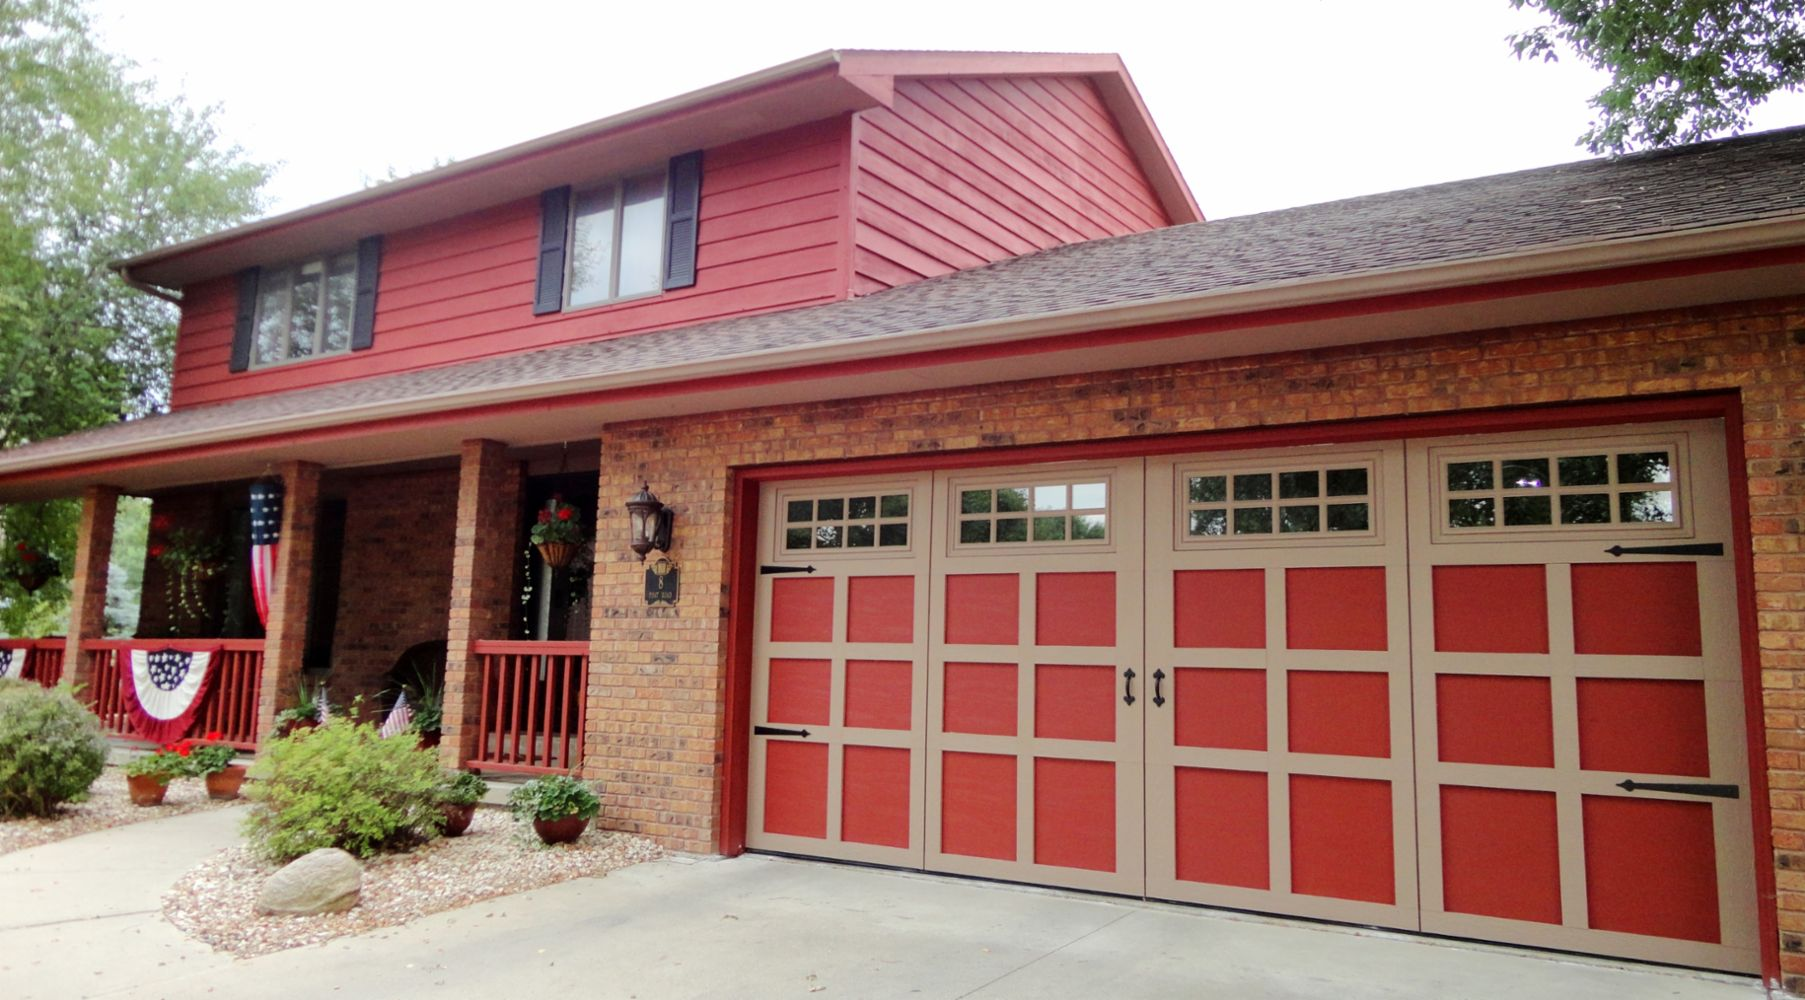 Charmant Garage Door Repair U0026 Installation In League City, TX   Garage Door League  City TX